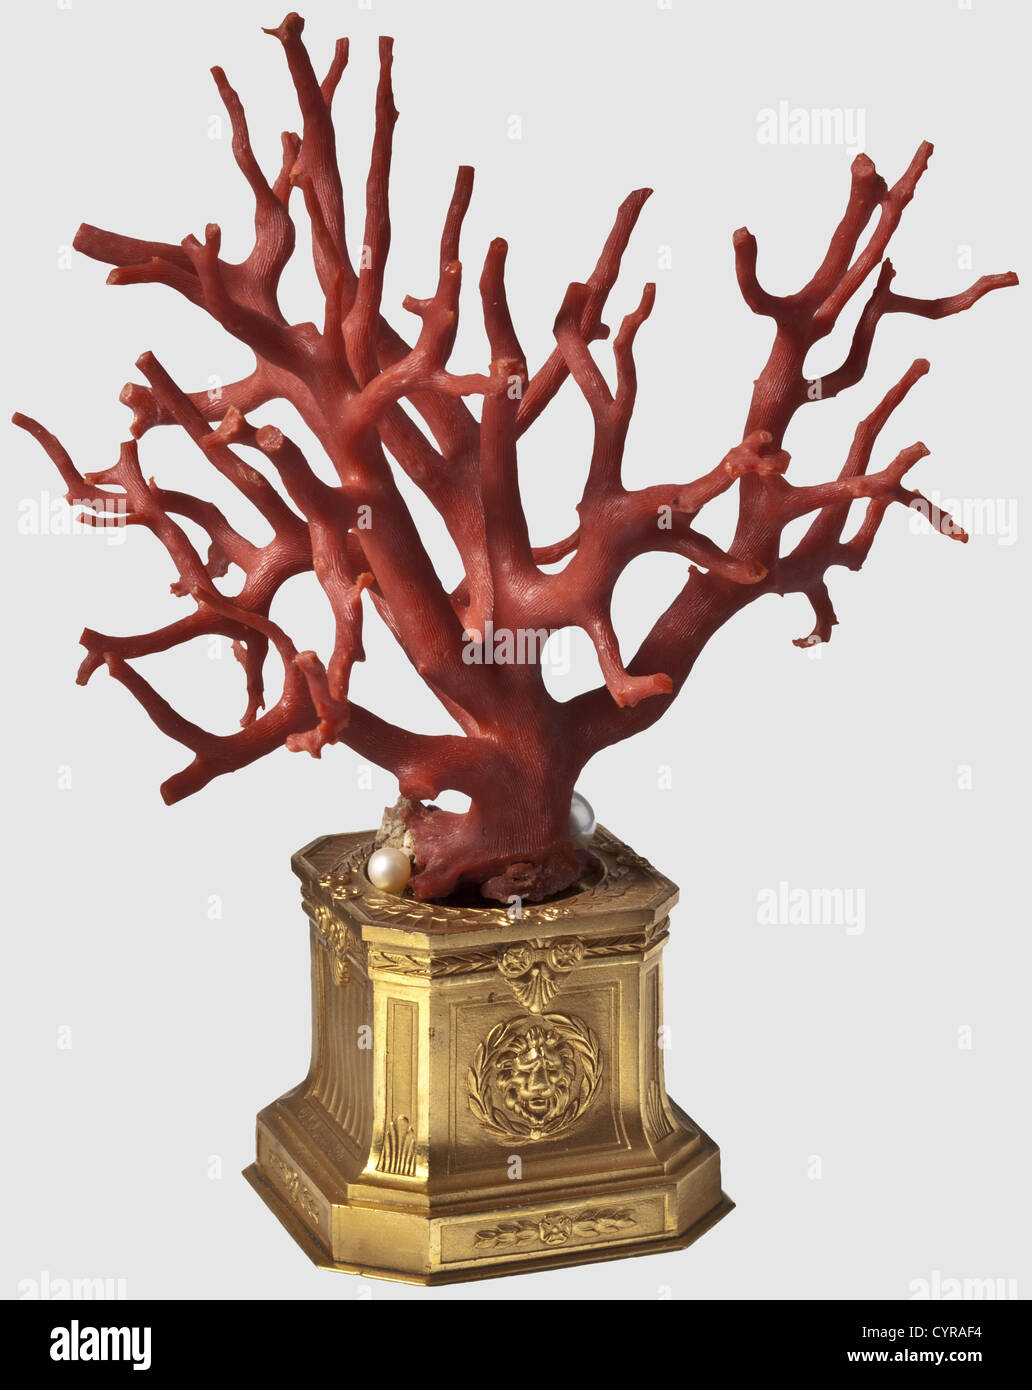 A tree-shaped coral, Southern Italy, 19th century A richly branching tree of precious coral with three pearls attached - Stock Image